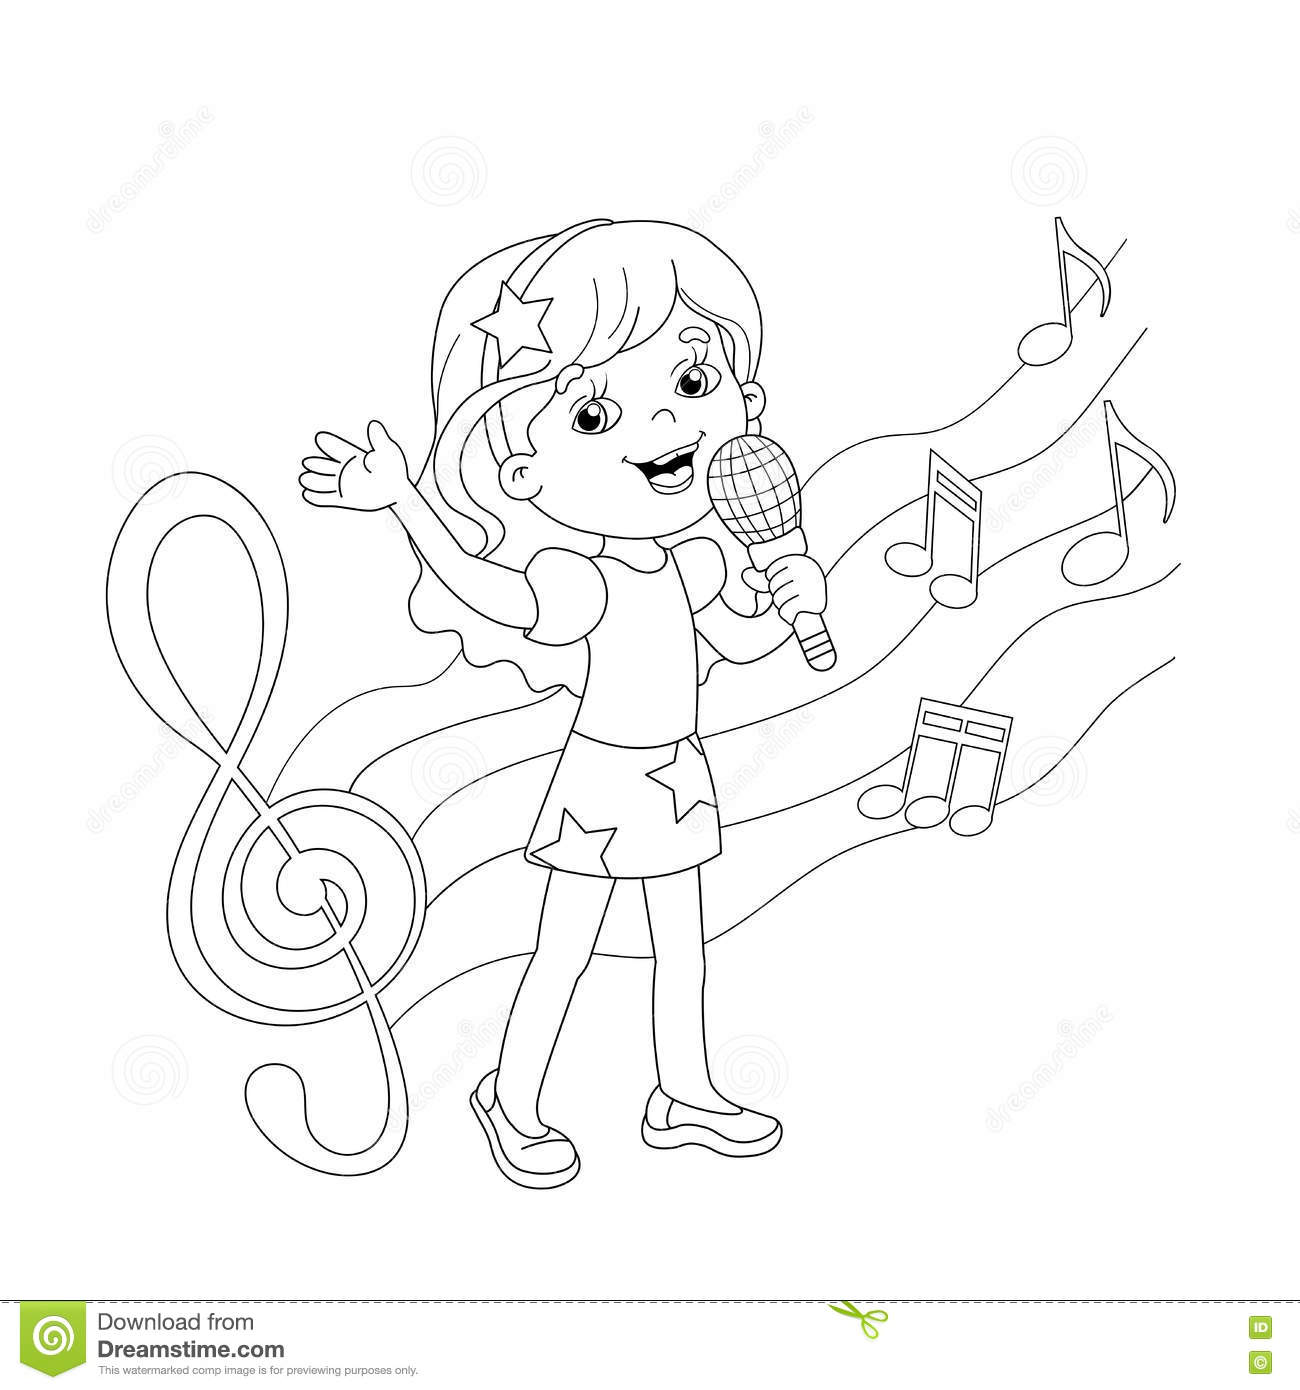 Coloring Page Outline Of Cartoon Girl Singing A Song Stock Vector